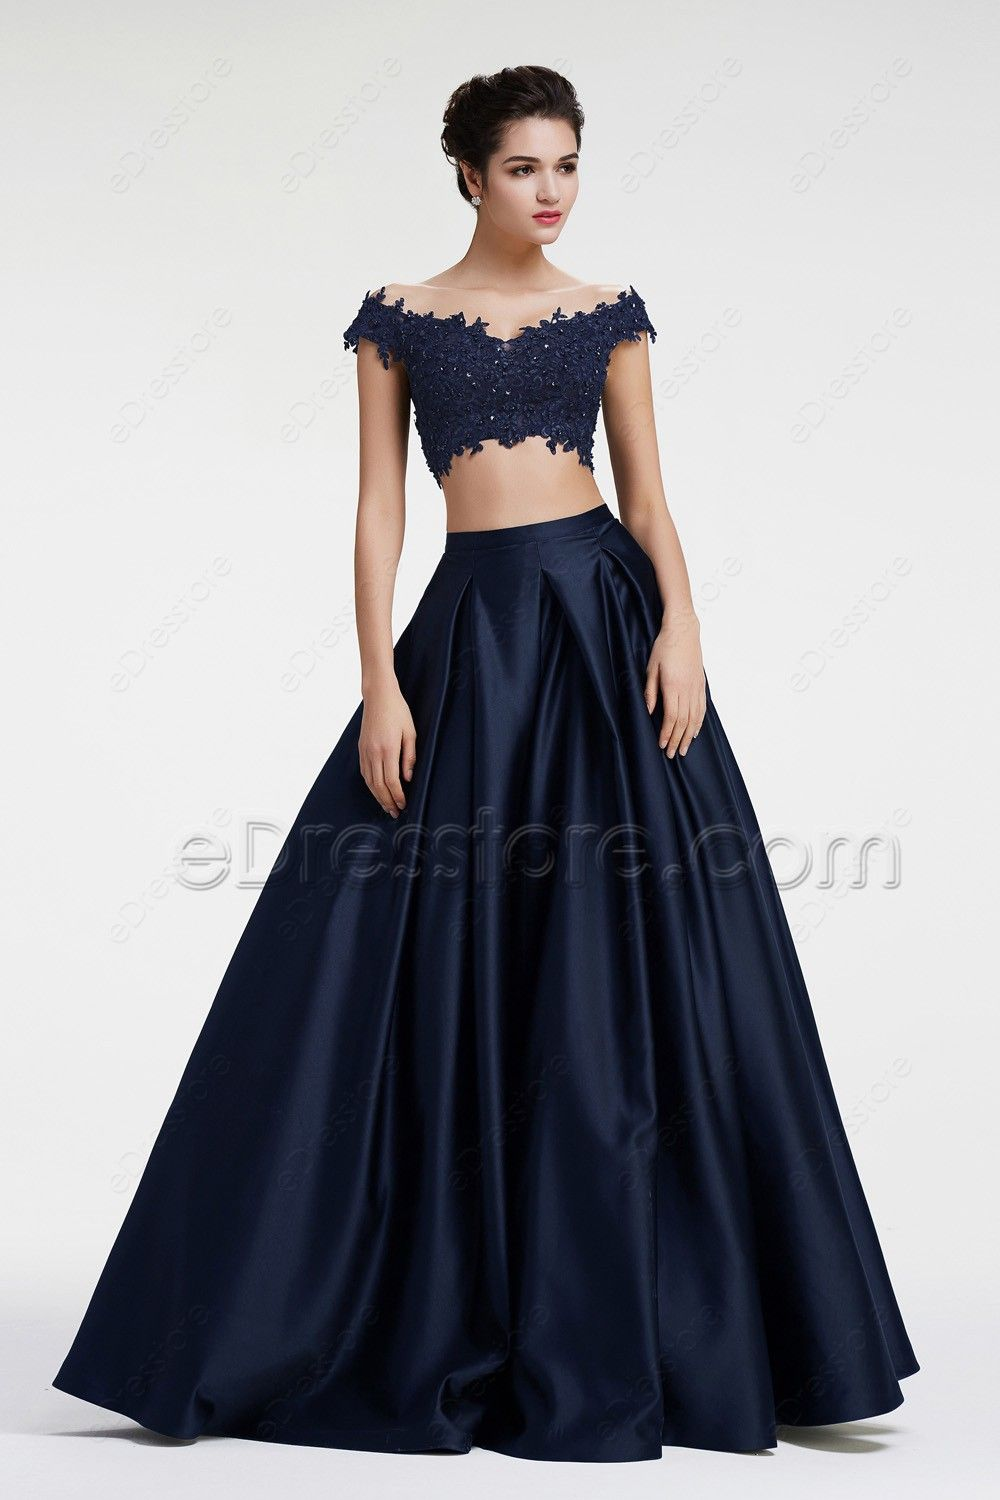 ba65d31a64 The gorgeous prom dress features off the shoulder neckline with beaded lace  top, ball gown skirt finishing with floor length.